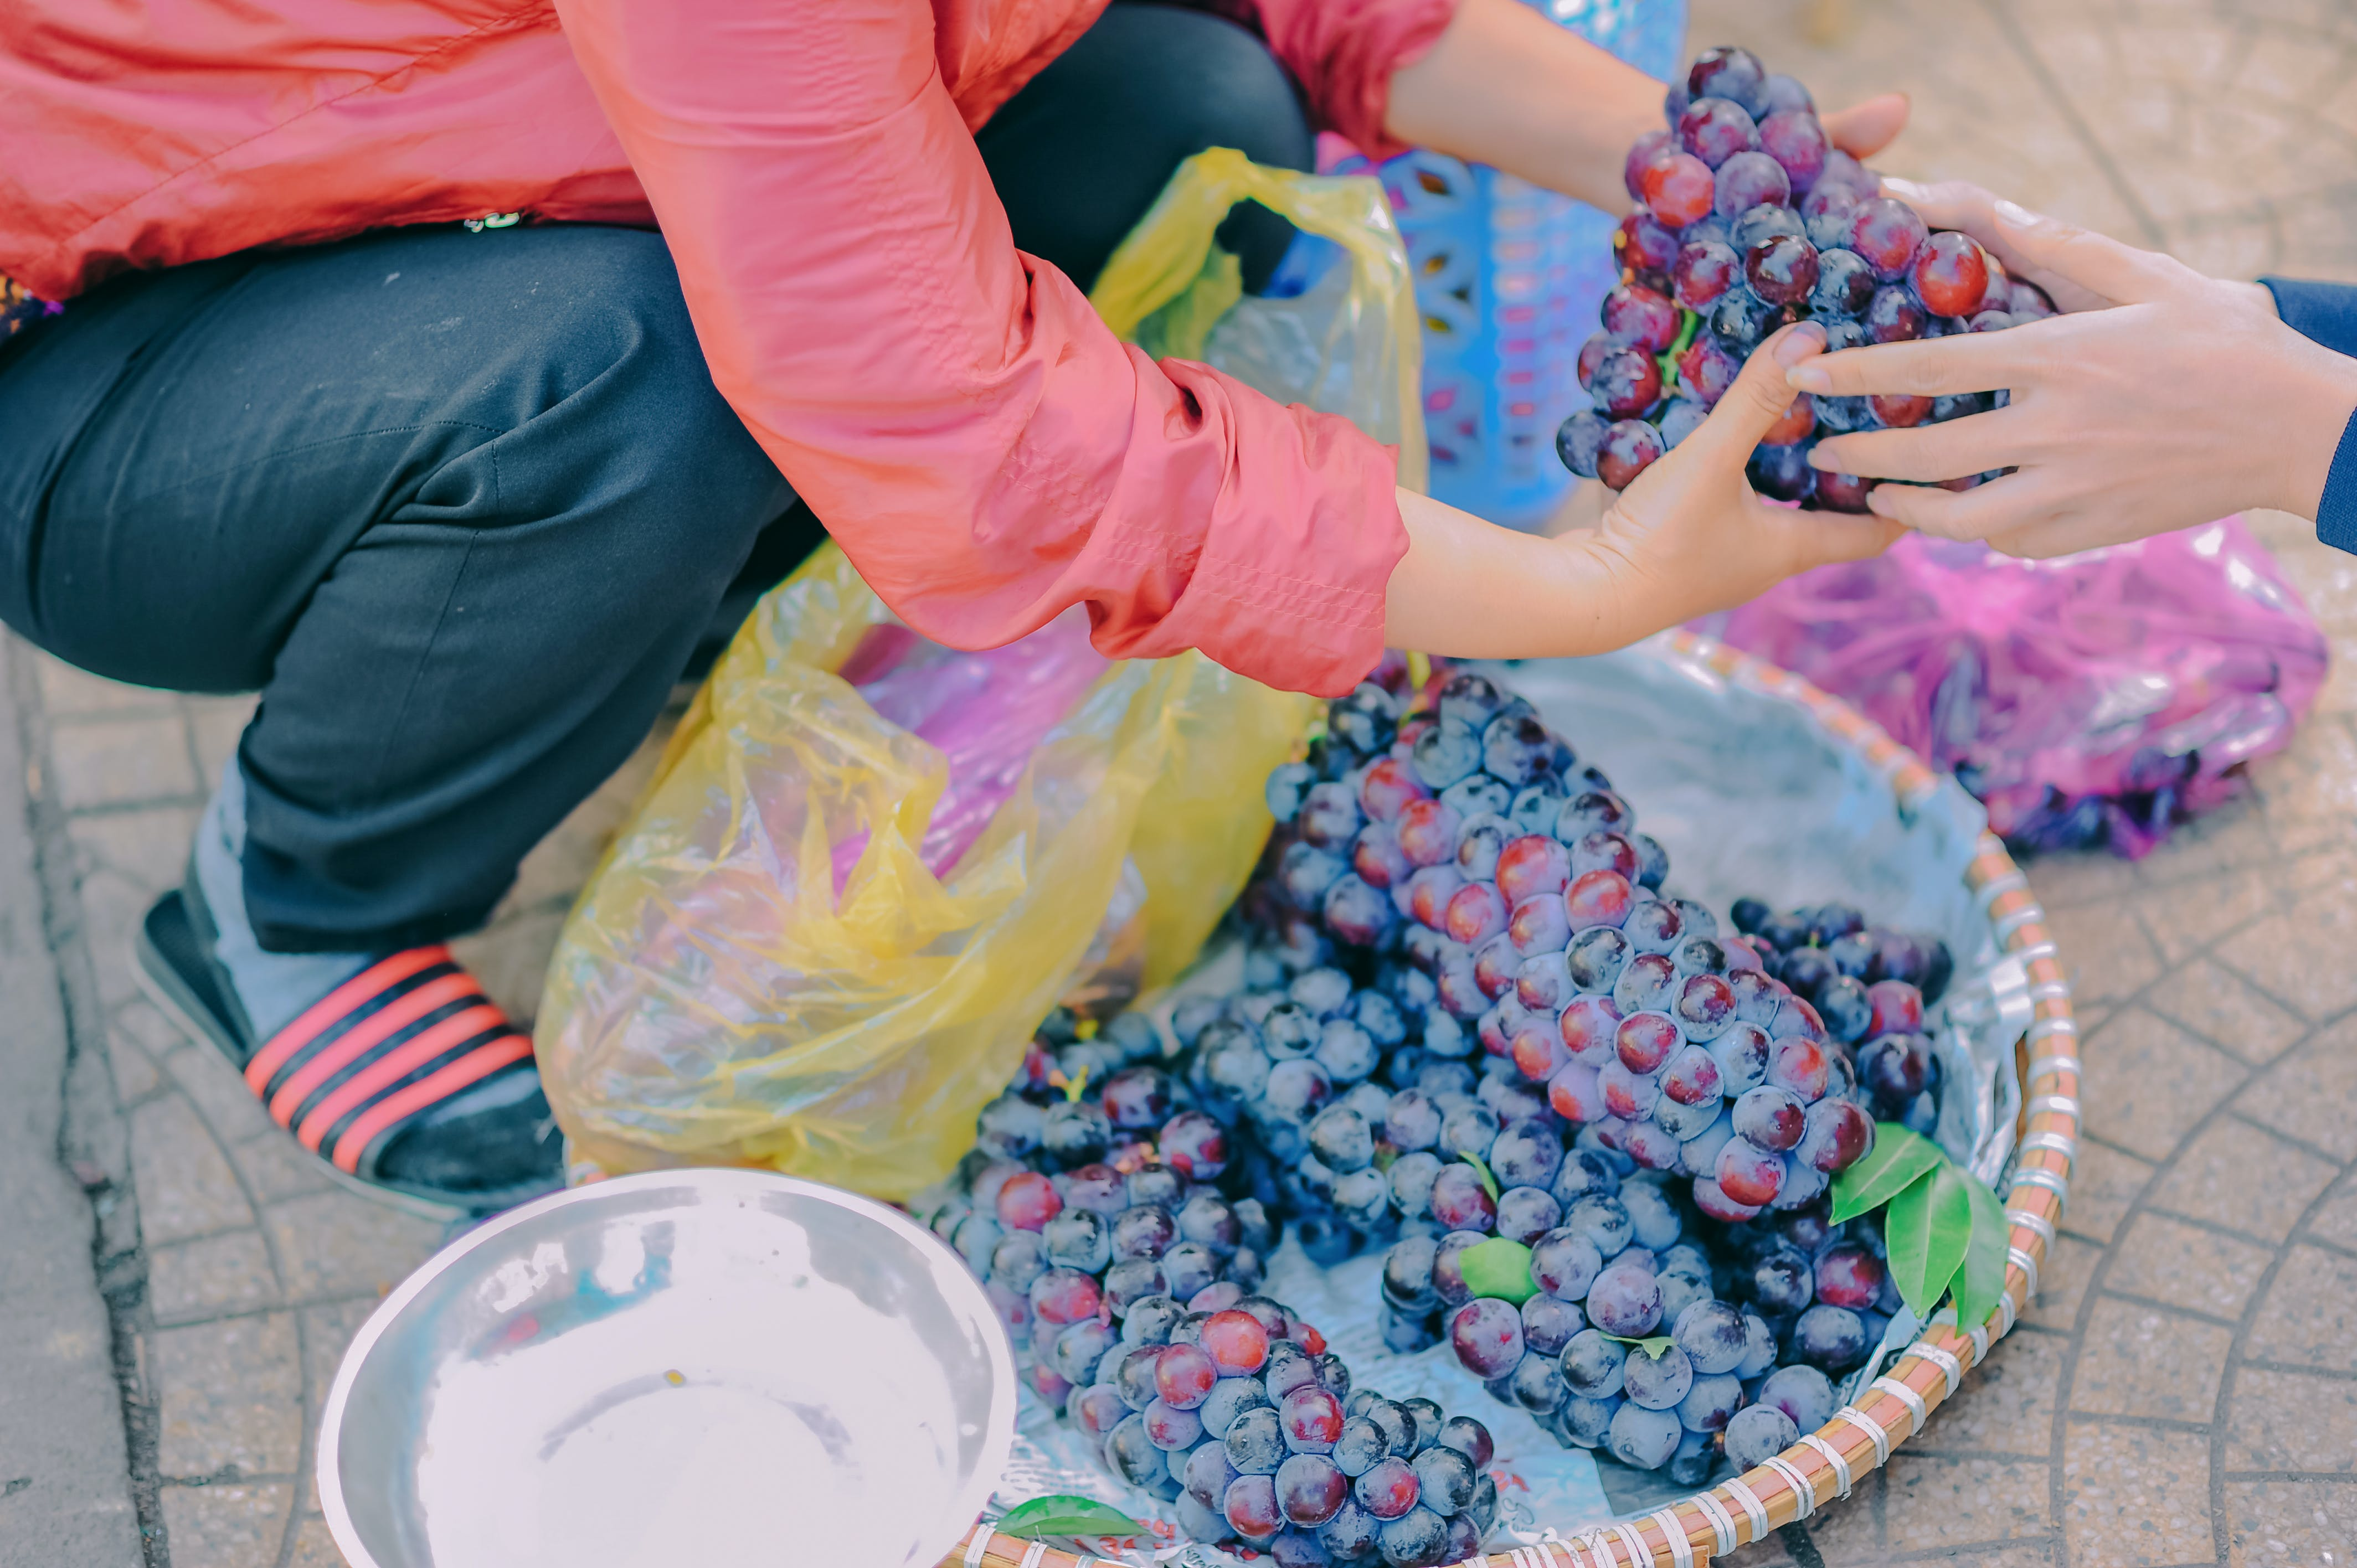 Person Holding Fruits